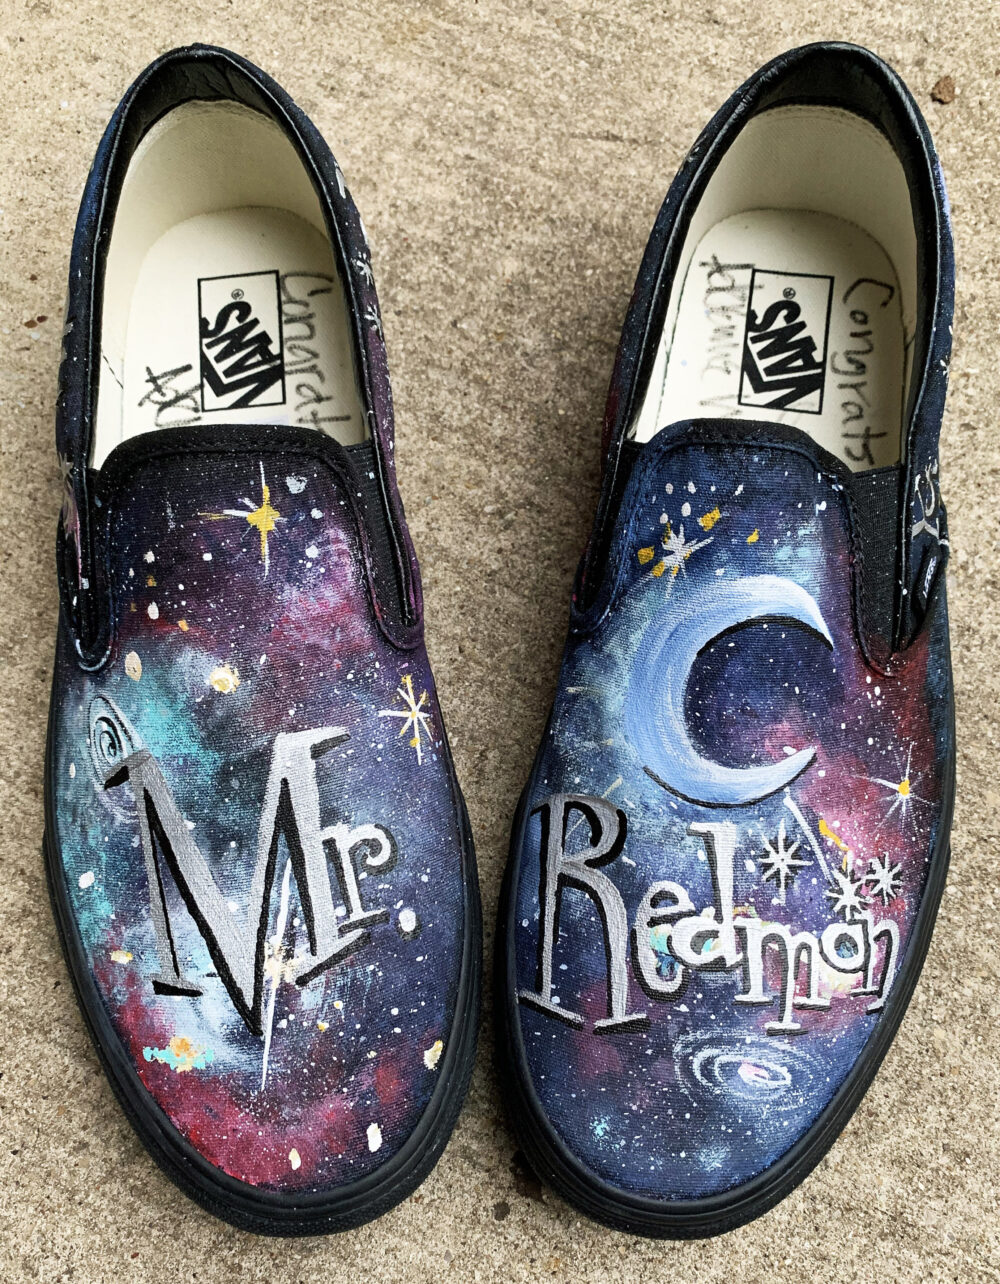 Vans Galaxy Shoes For Groom, Handpainted Milky Way Black Slip On Wedding Shoe Him, You Are My Moon & Stars, Galactic Groomsmen Van